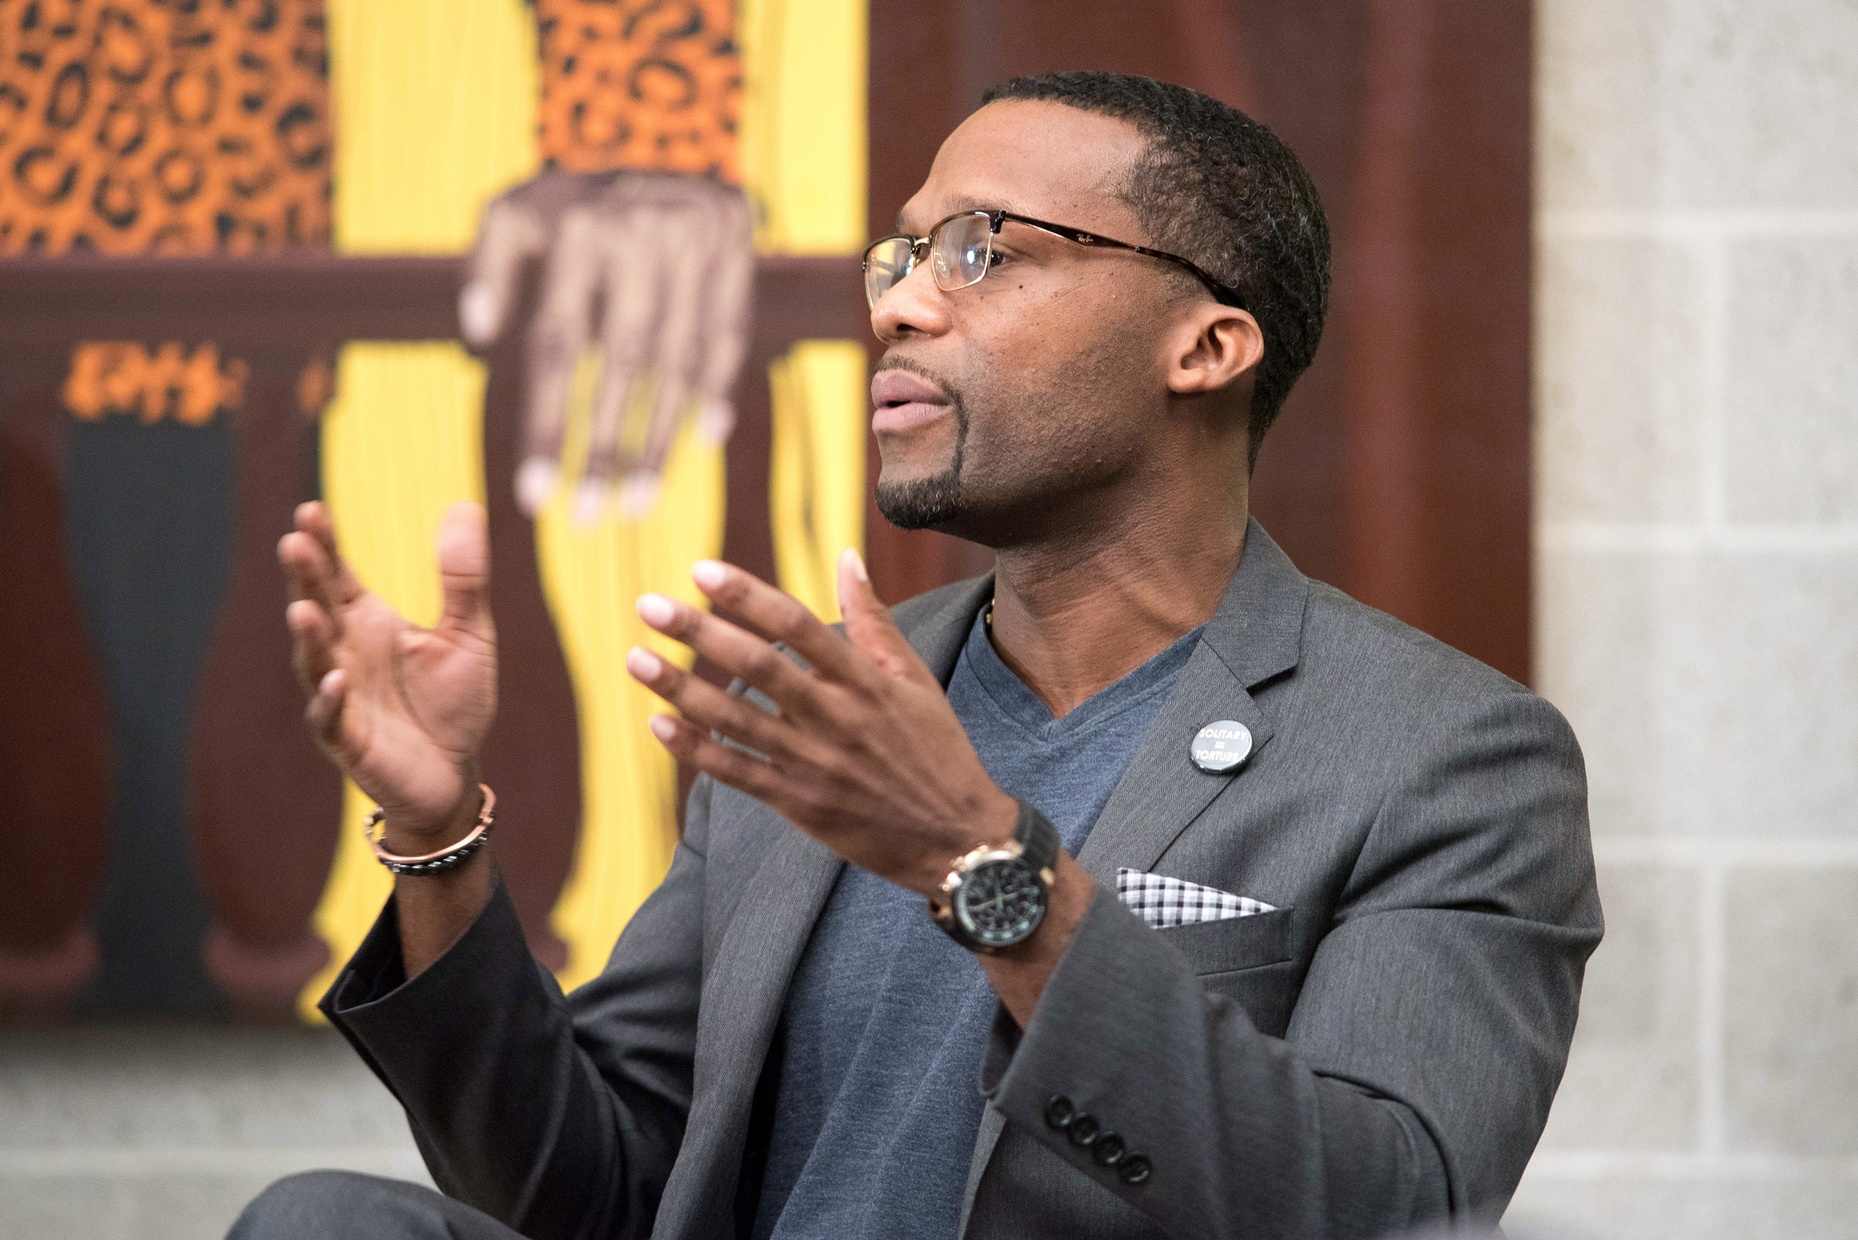 A middle-aged, black man talking with his hands raised in front of a colorful painting.